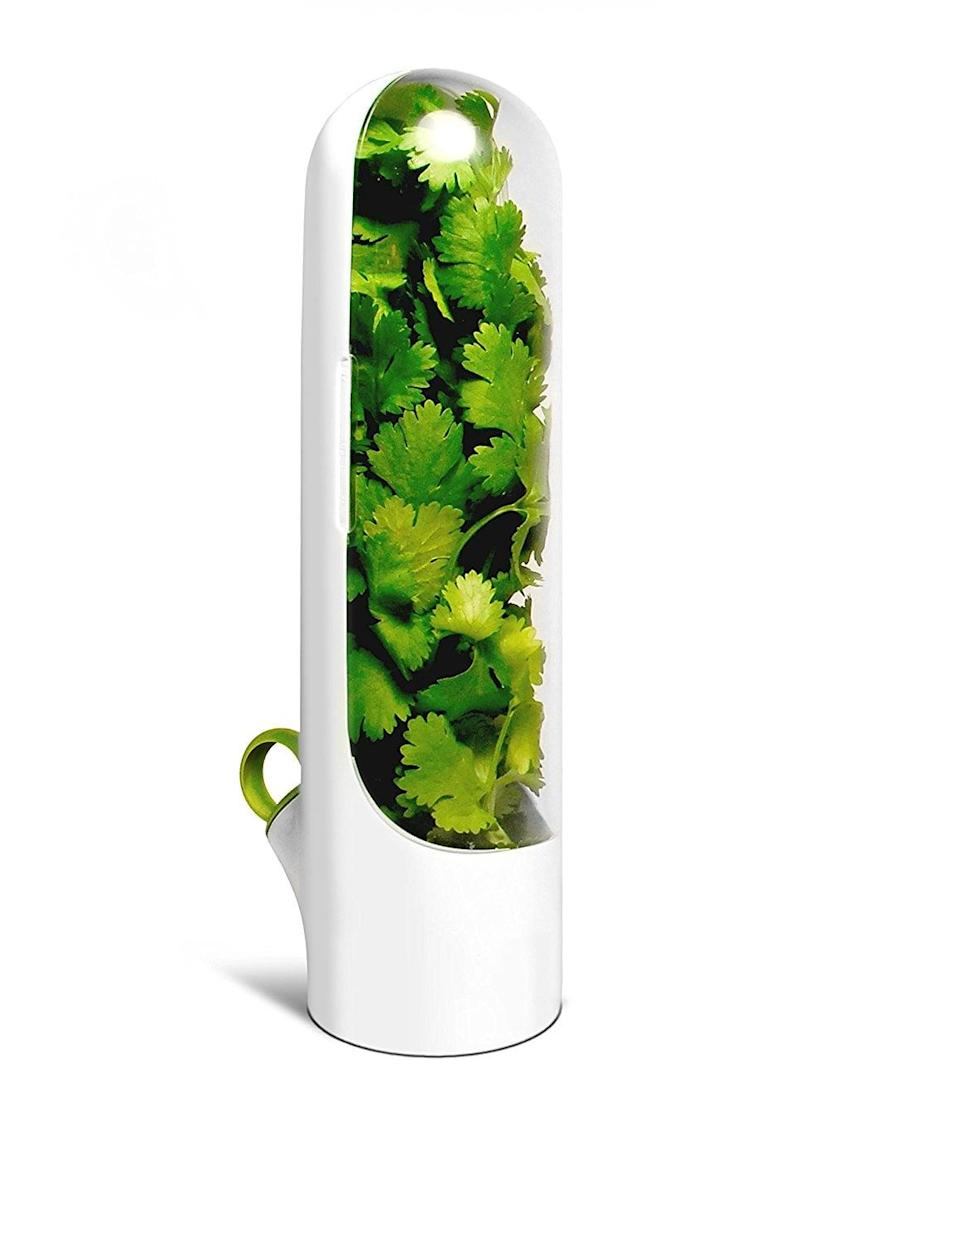 <p>Make sure your herbs stay as fresh as possible by storing them in this <span>Herb Saver Best Keeper</span> ($8). Simply refill it with water every three to five days and the herbs will last longer.</p>